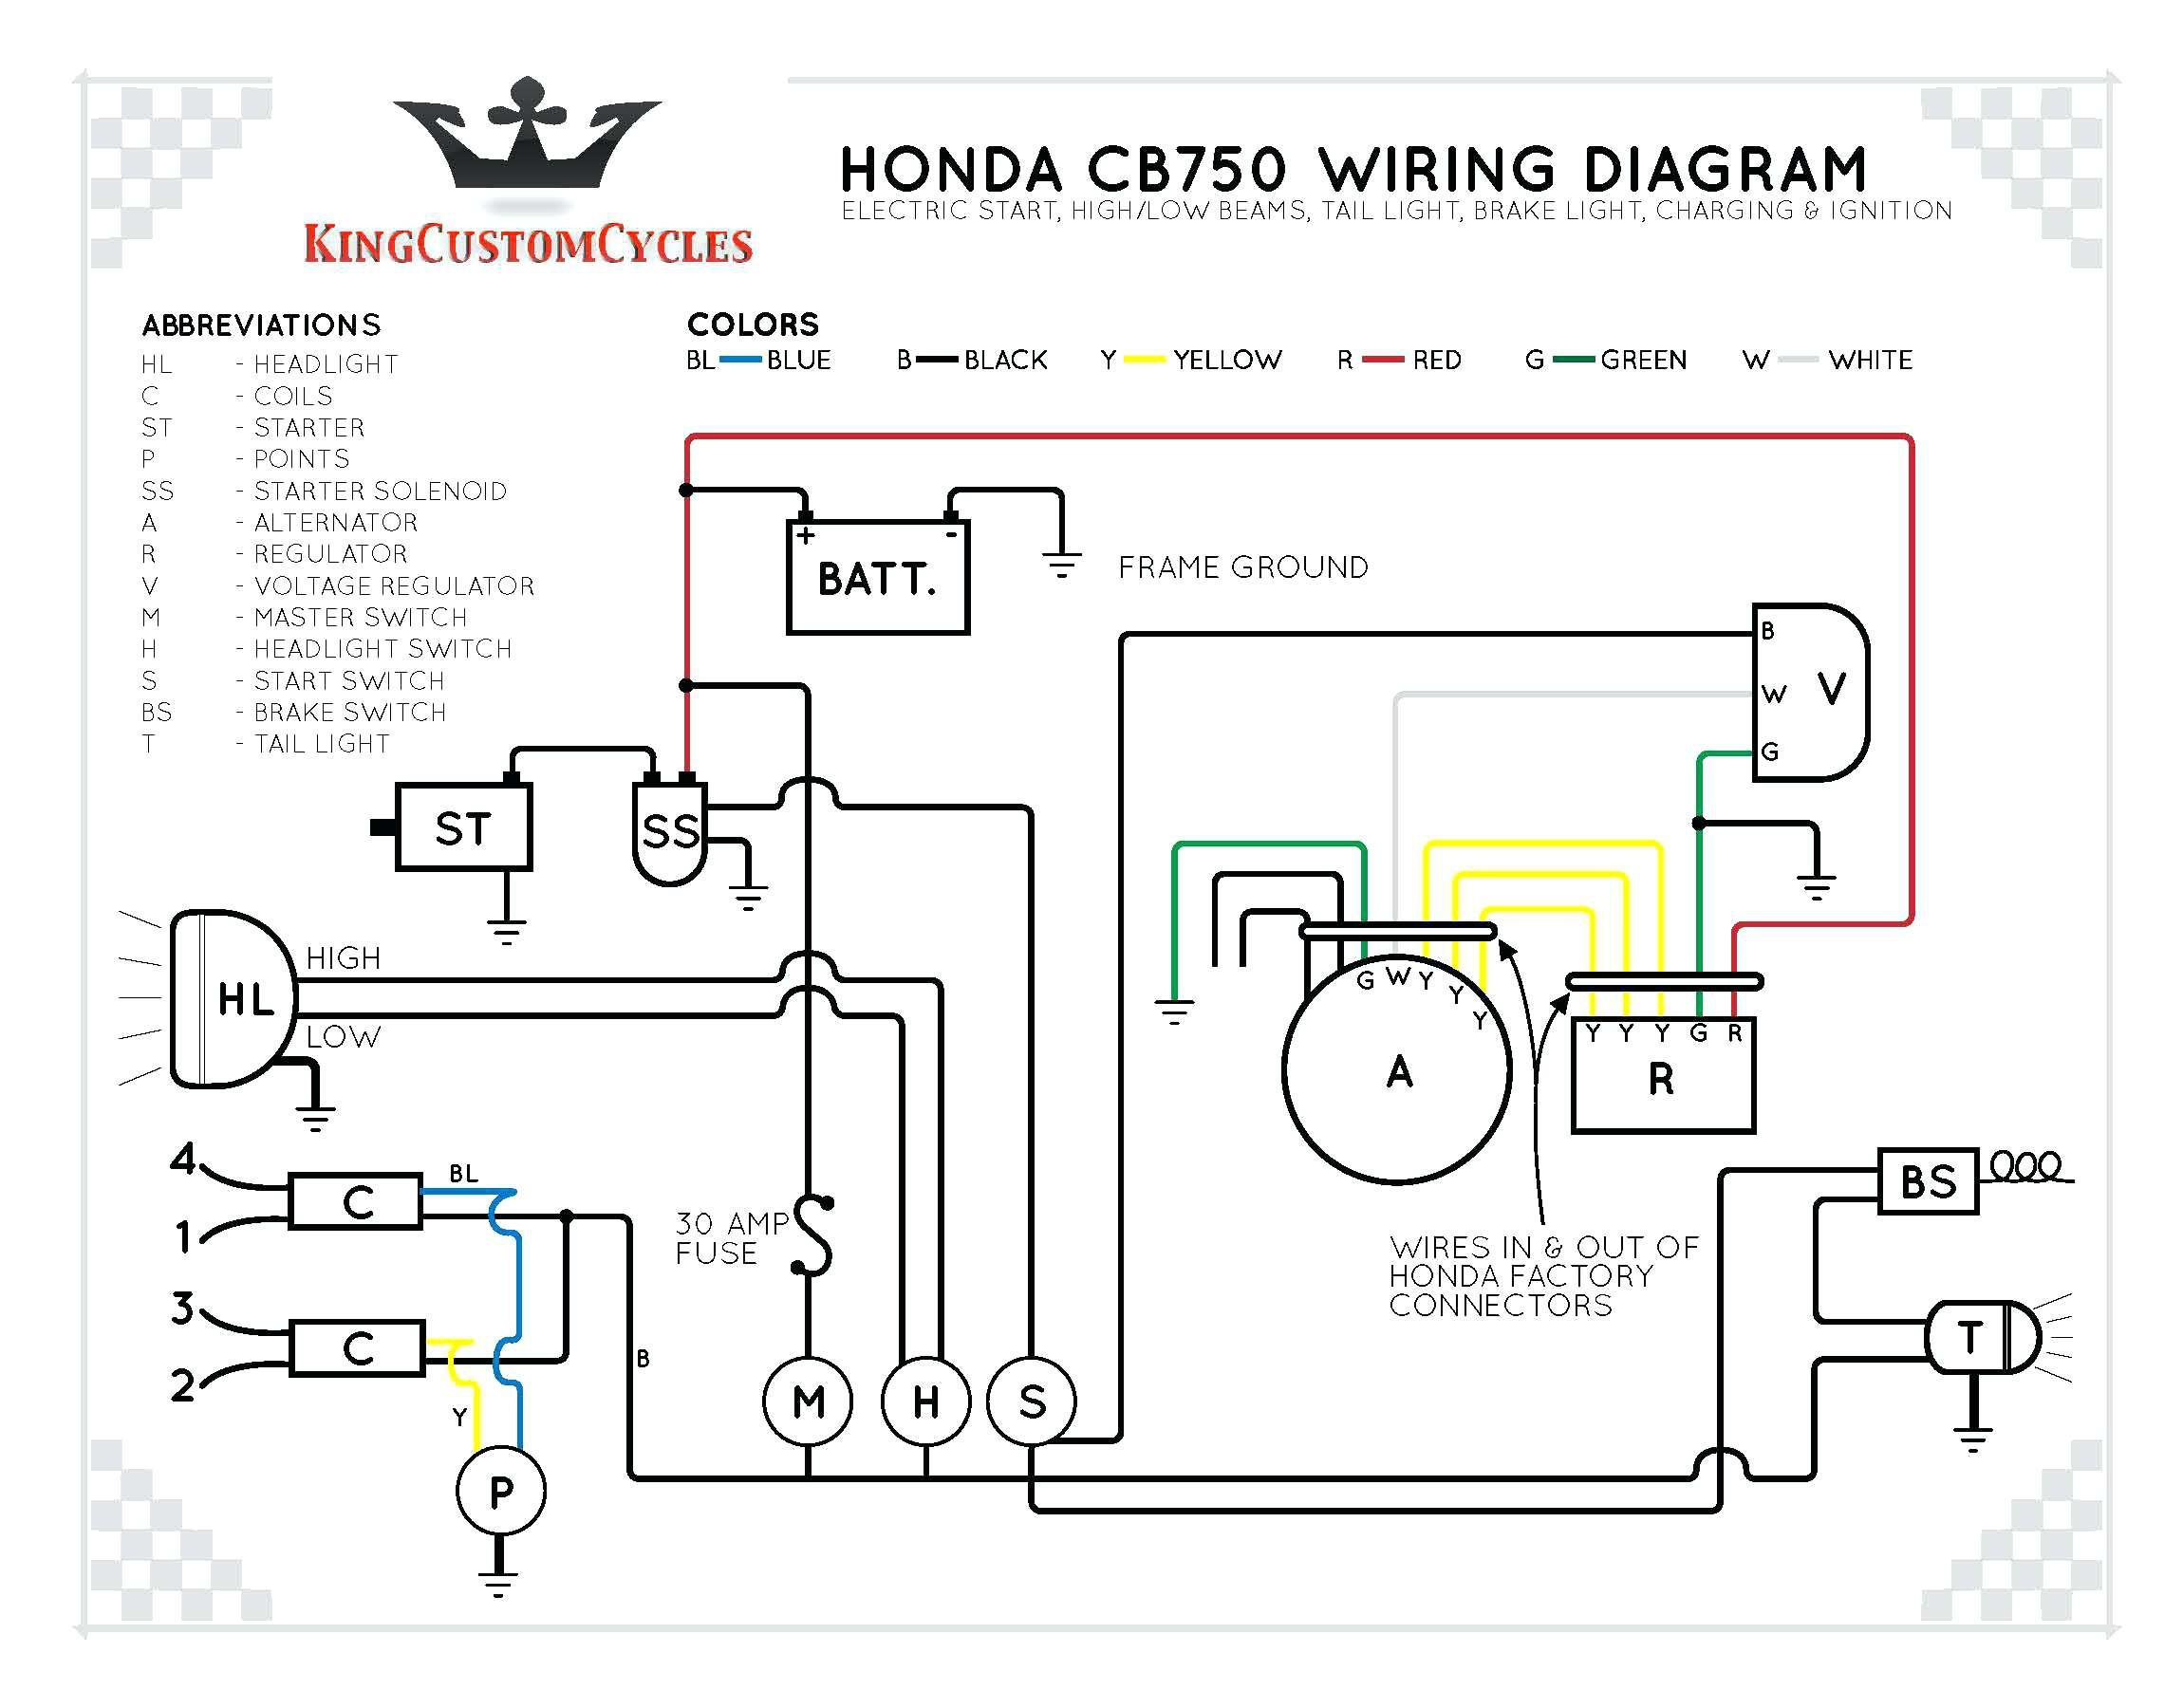 Wiring Diagram for Warn Winch Fresh Warn Winch Wiring Diagram solenoid Unique Stunning How to Wire